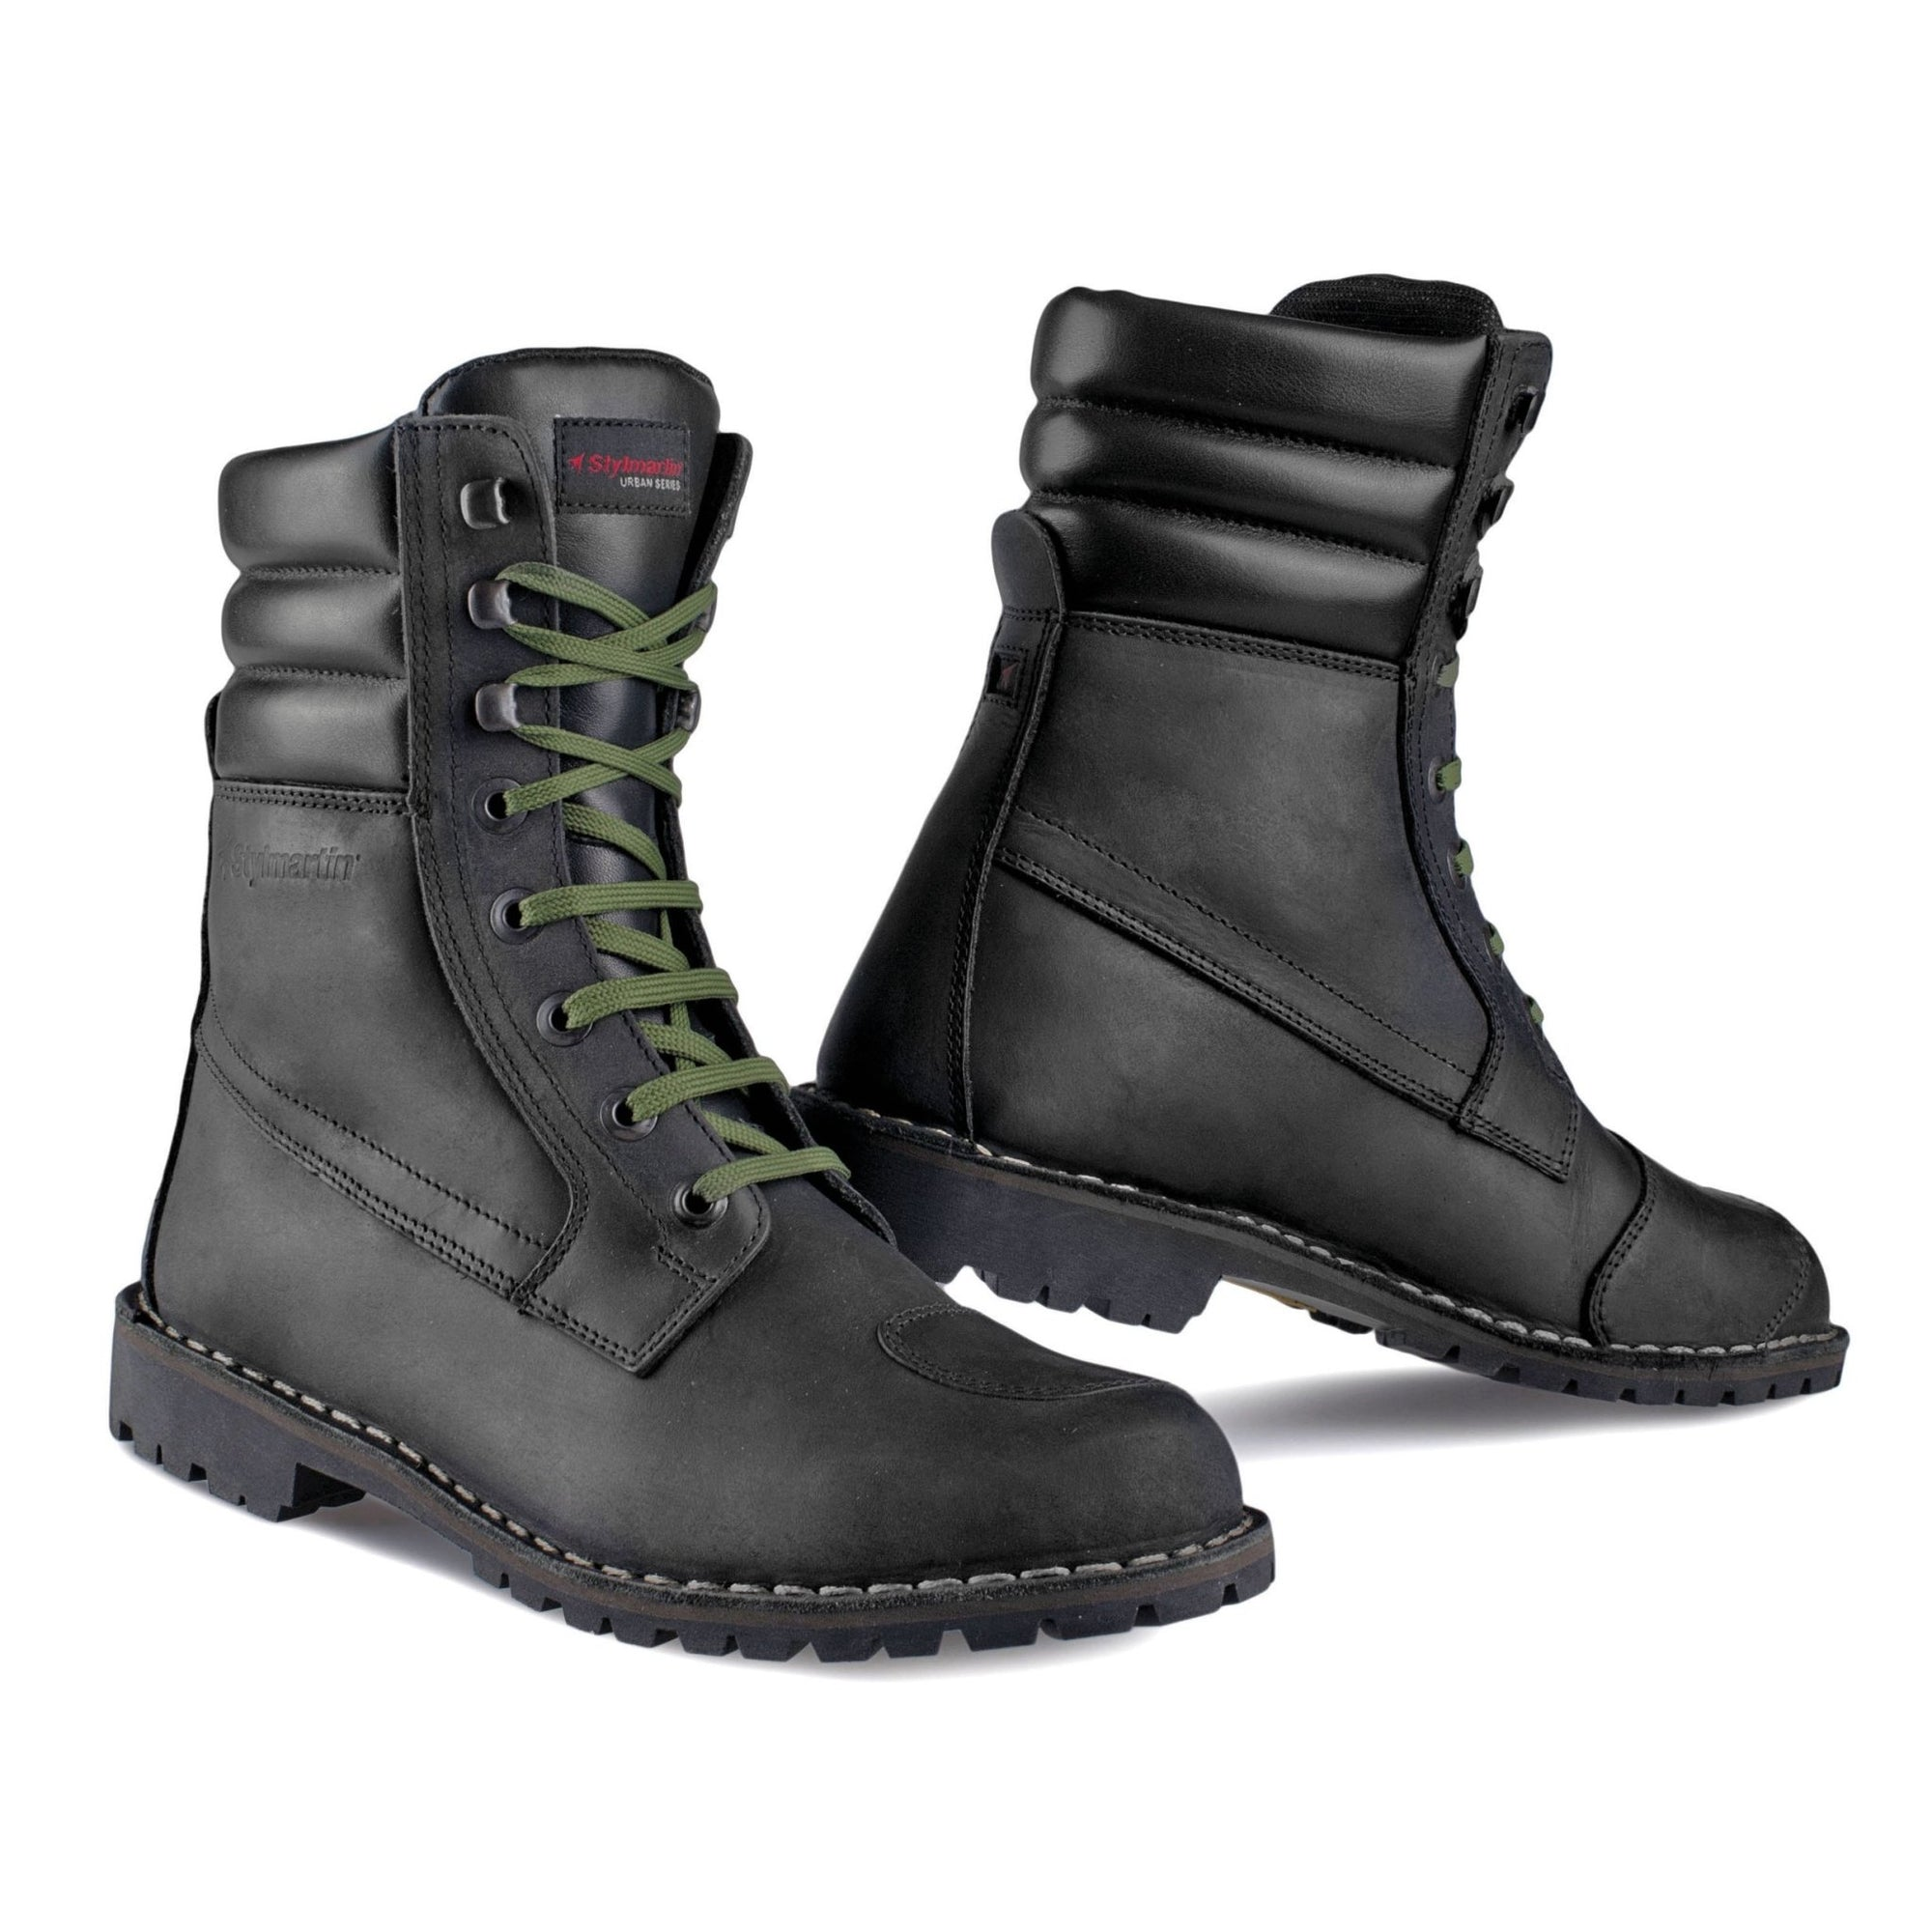 Stylmartin - Stylmartin Yu'Rok WP Urban in Black - Boots - Salt Flats Clothing